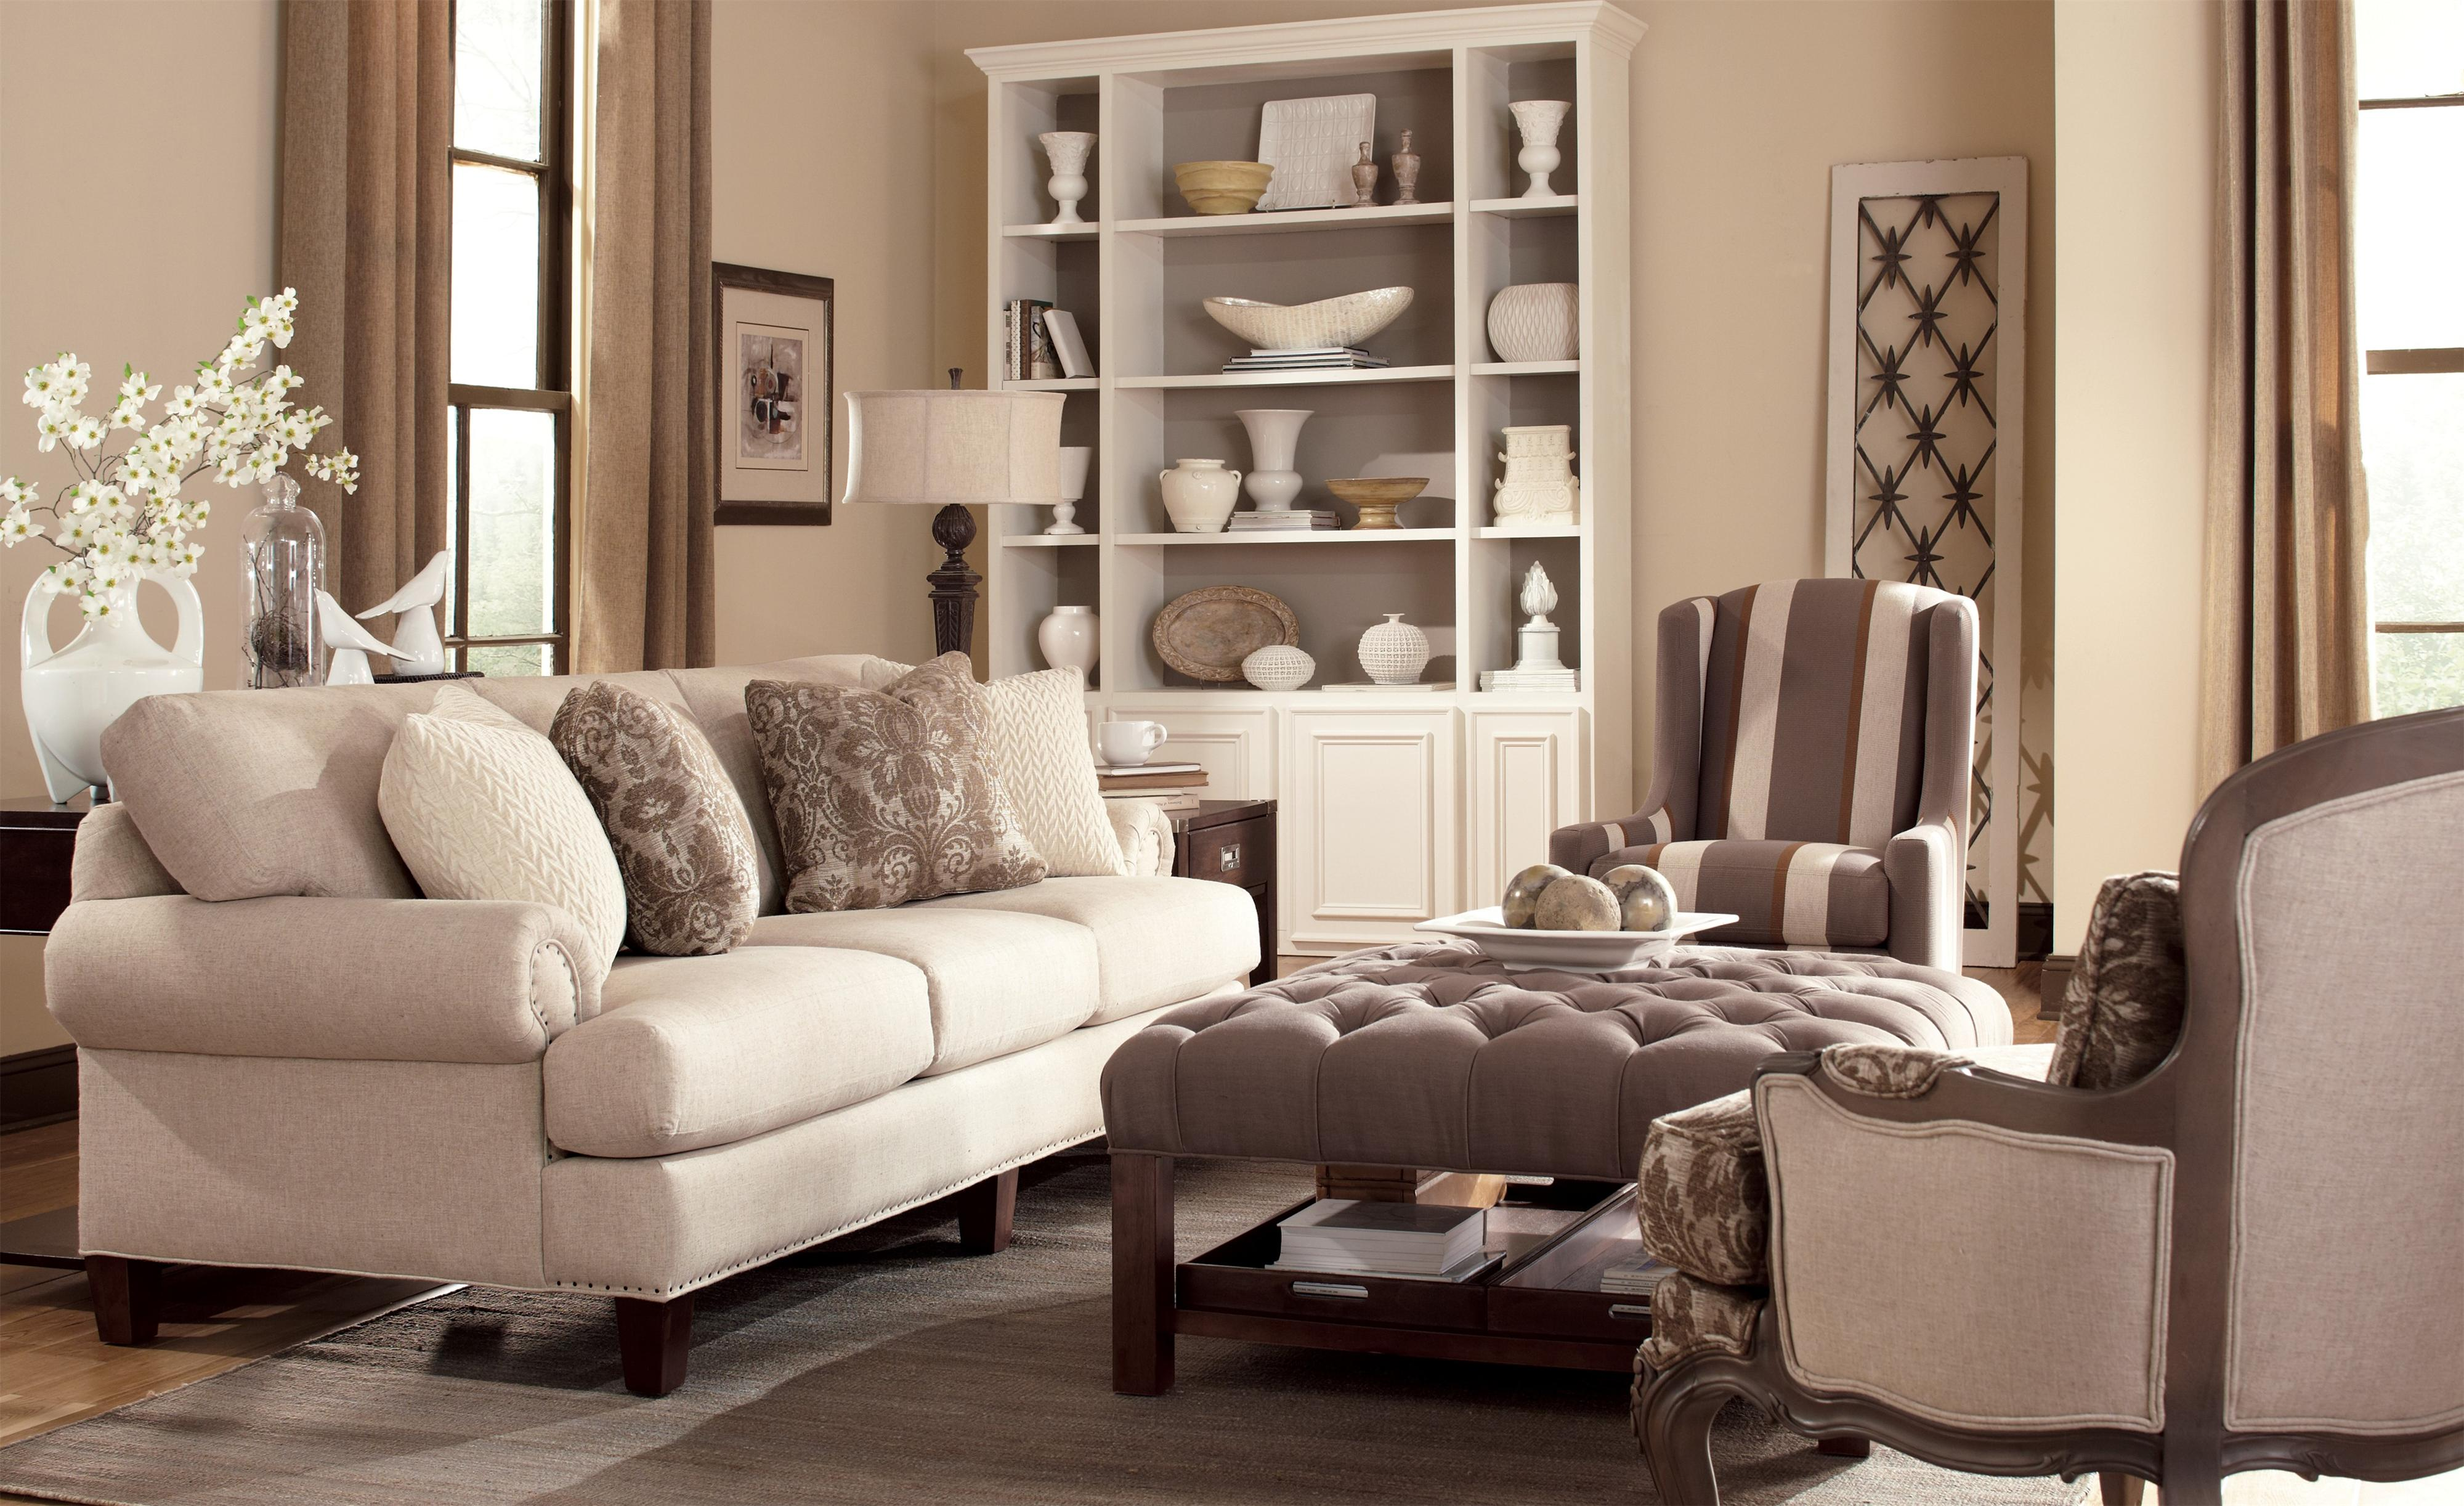 Craftmaster 7405 Stationary Living Room Group Boulevard Home Furnishings Upholstery Group